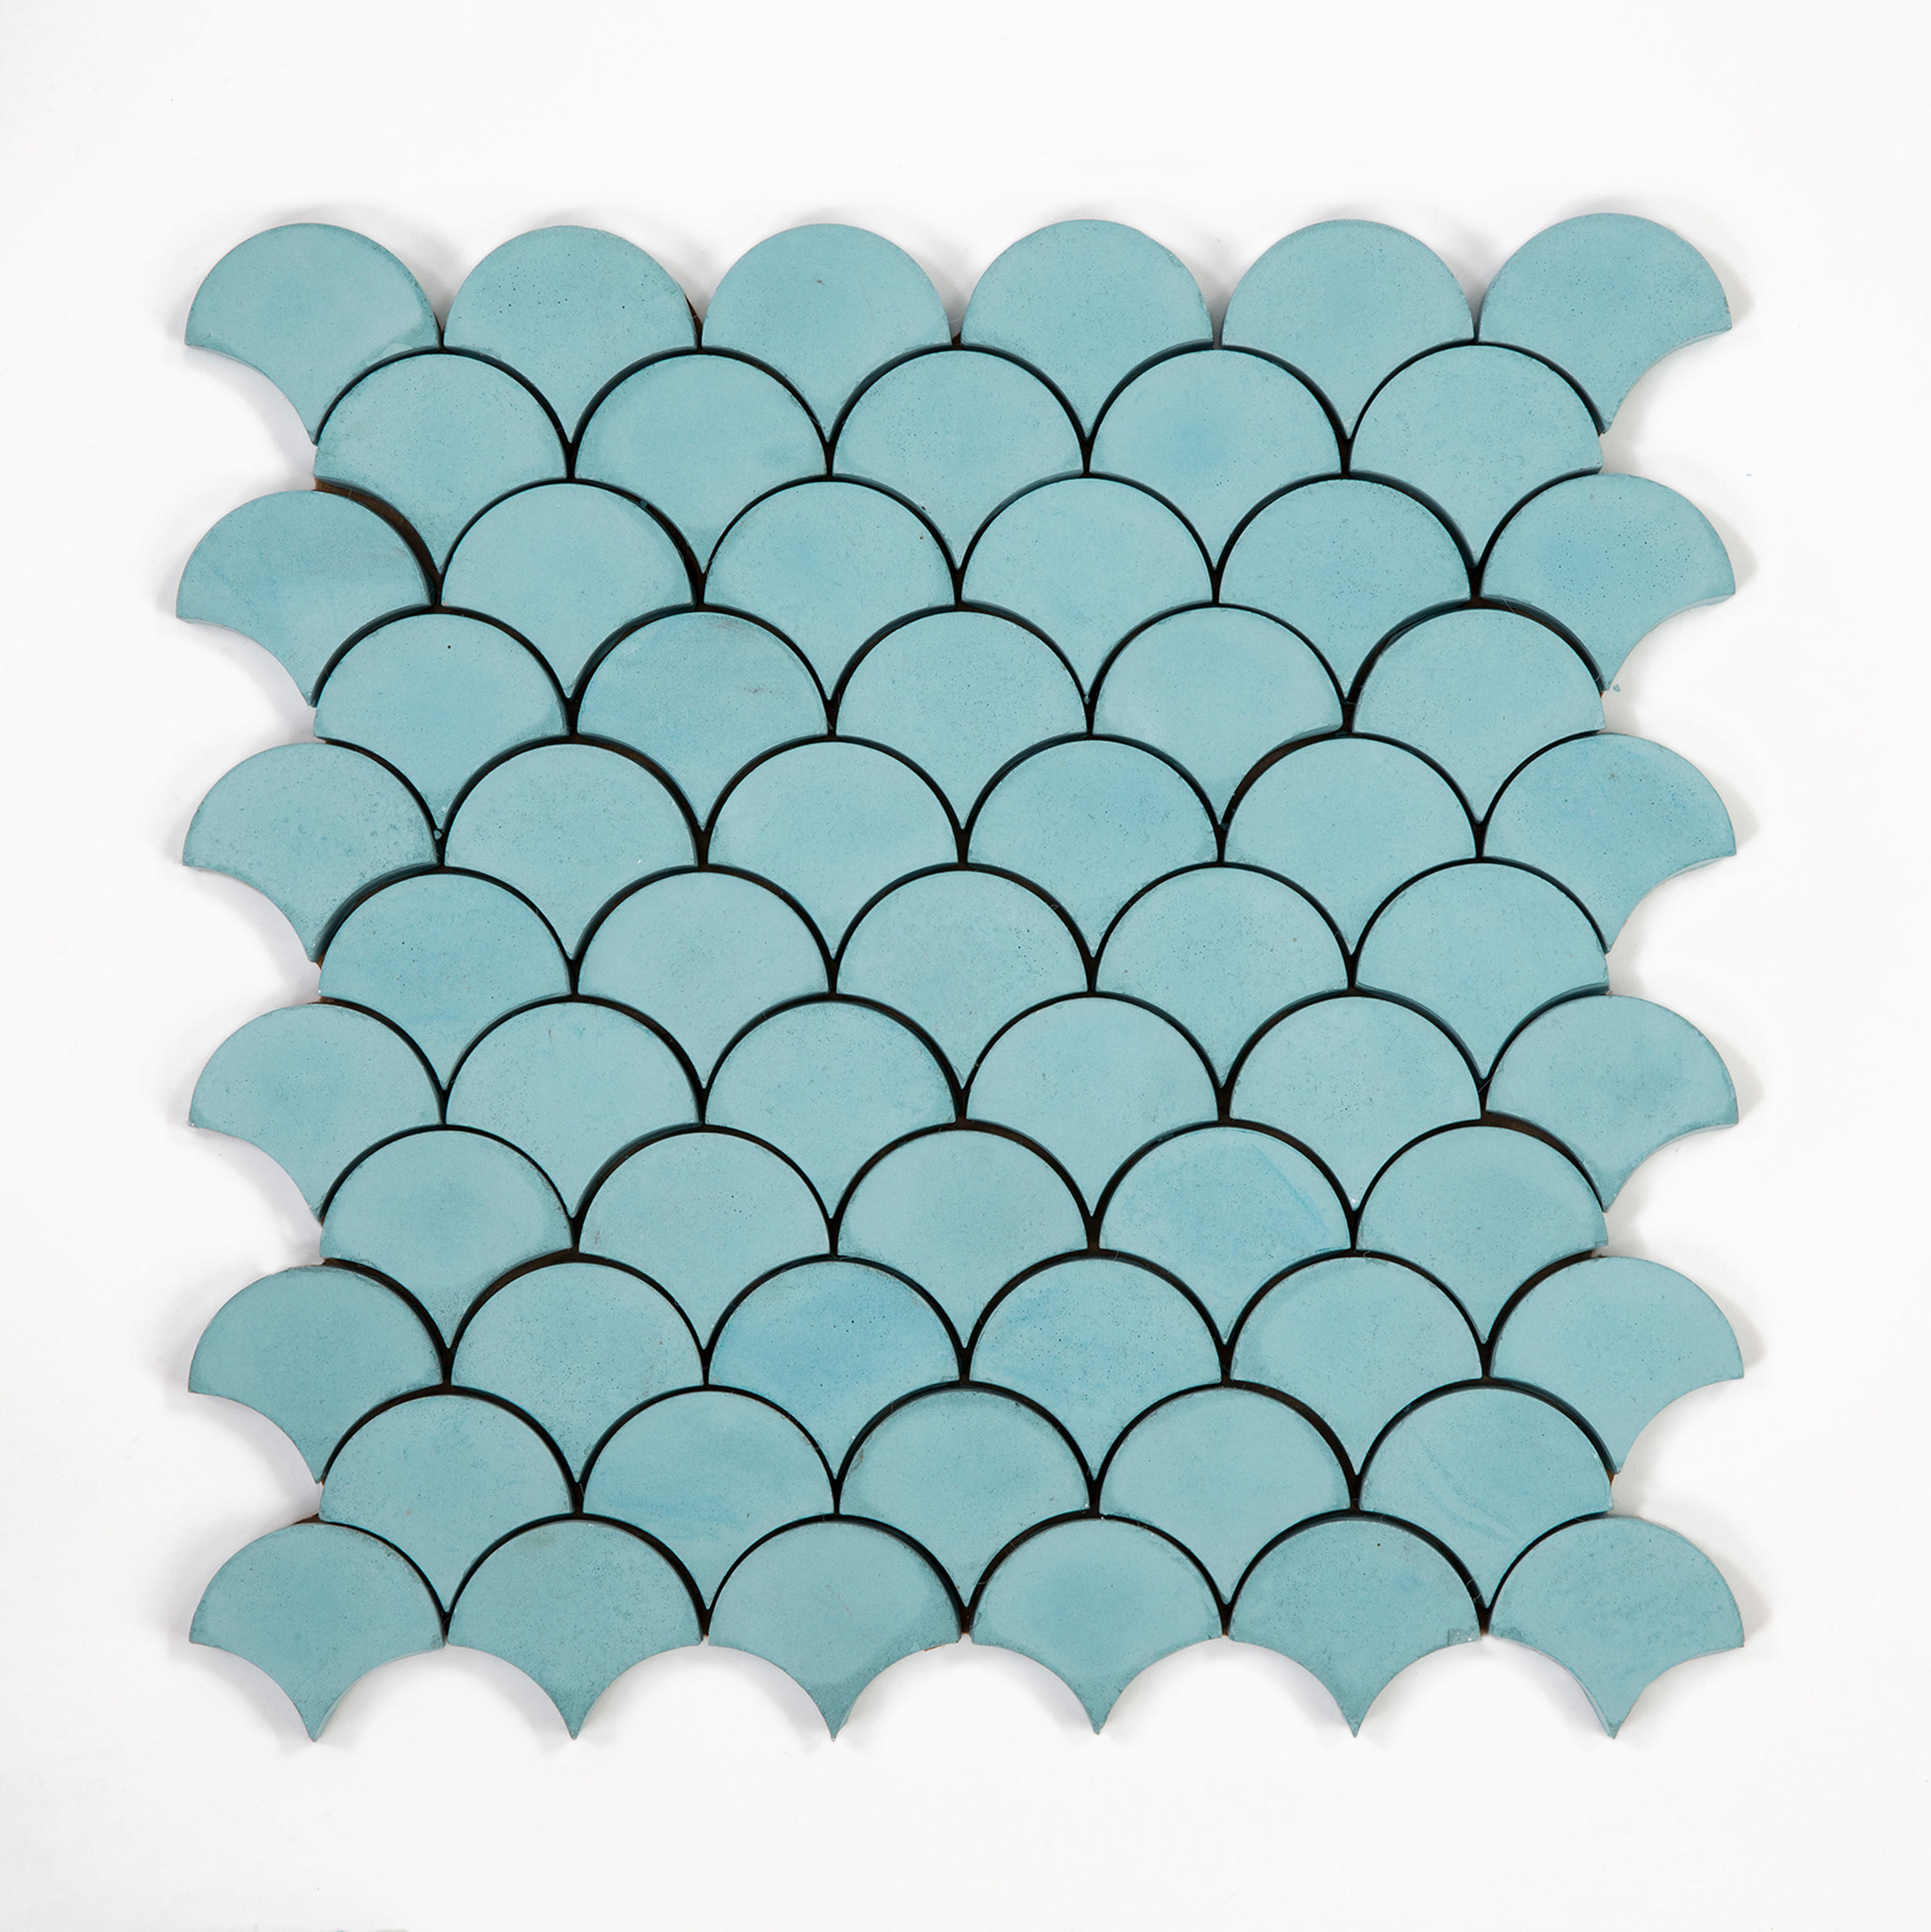 Scale aqua floor tiles from granada tile architonic scale aqua by granada tile floor tiles doublecrazyfo Gallery